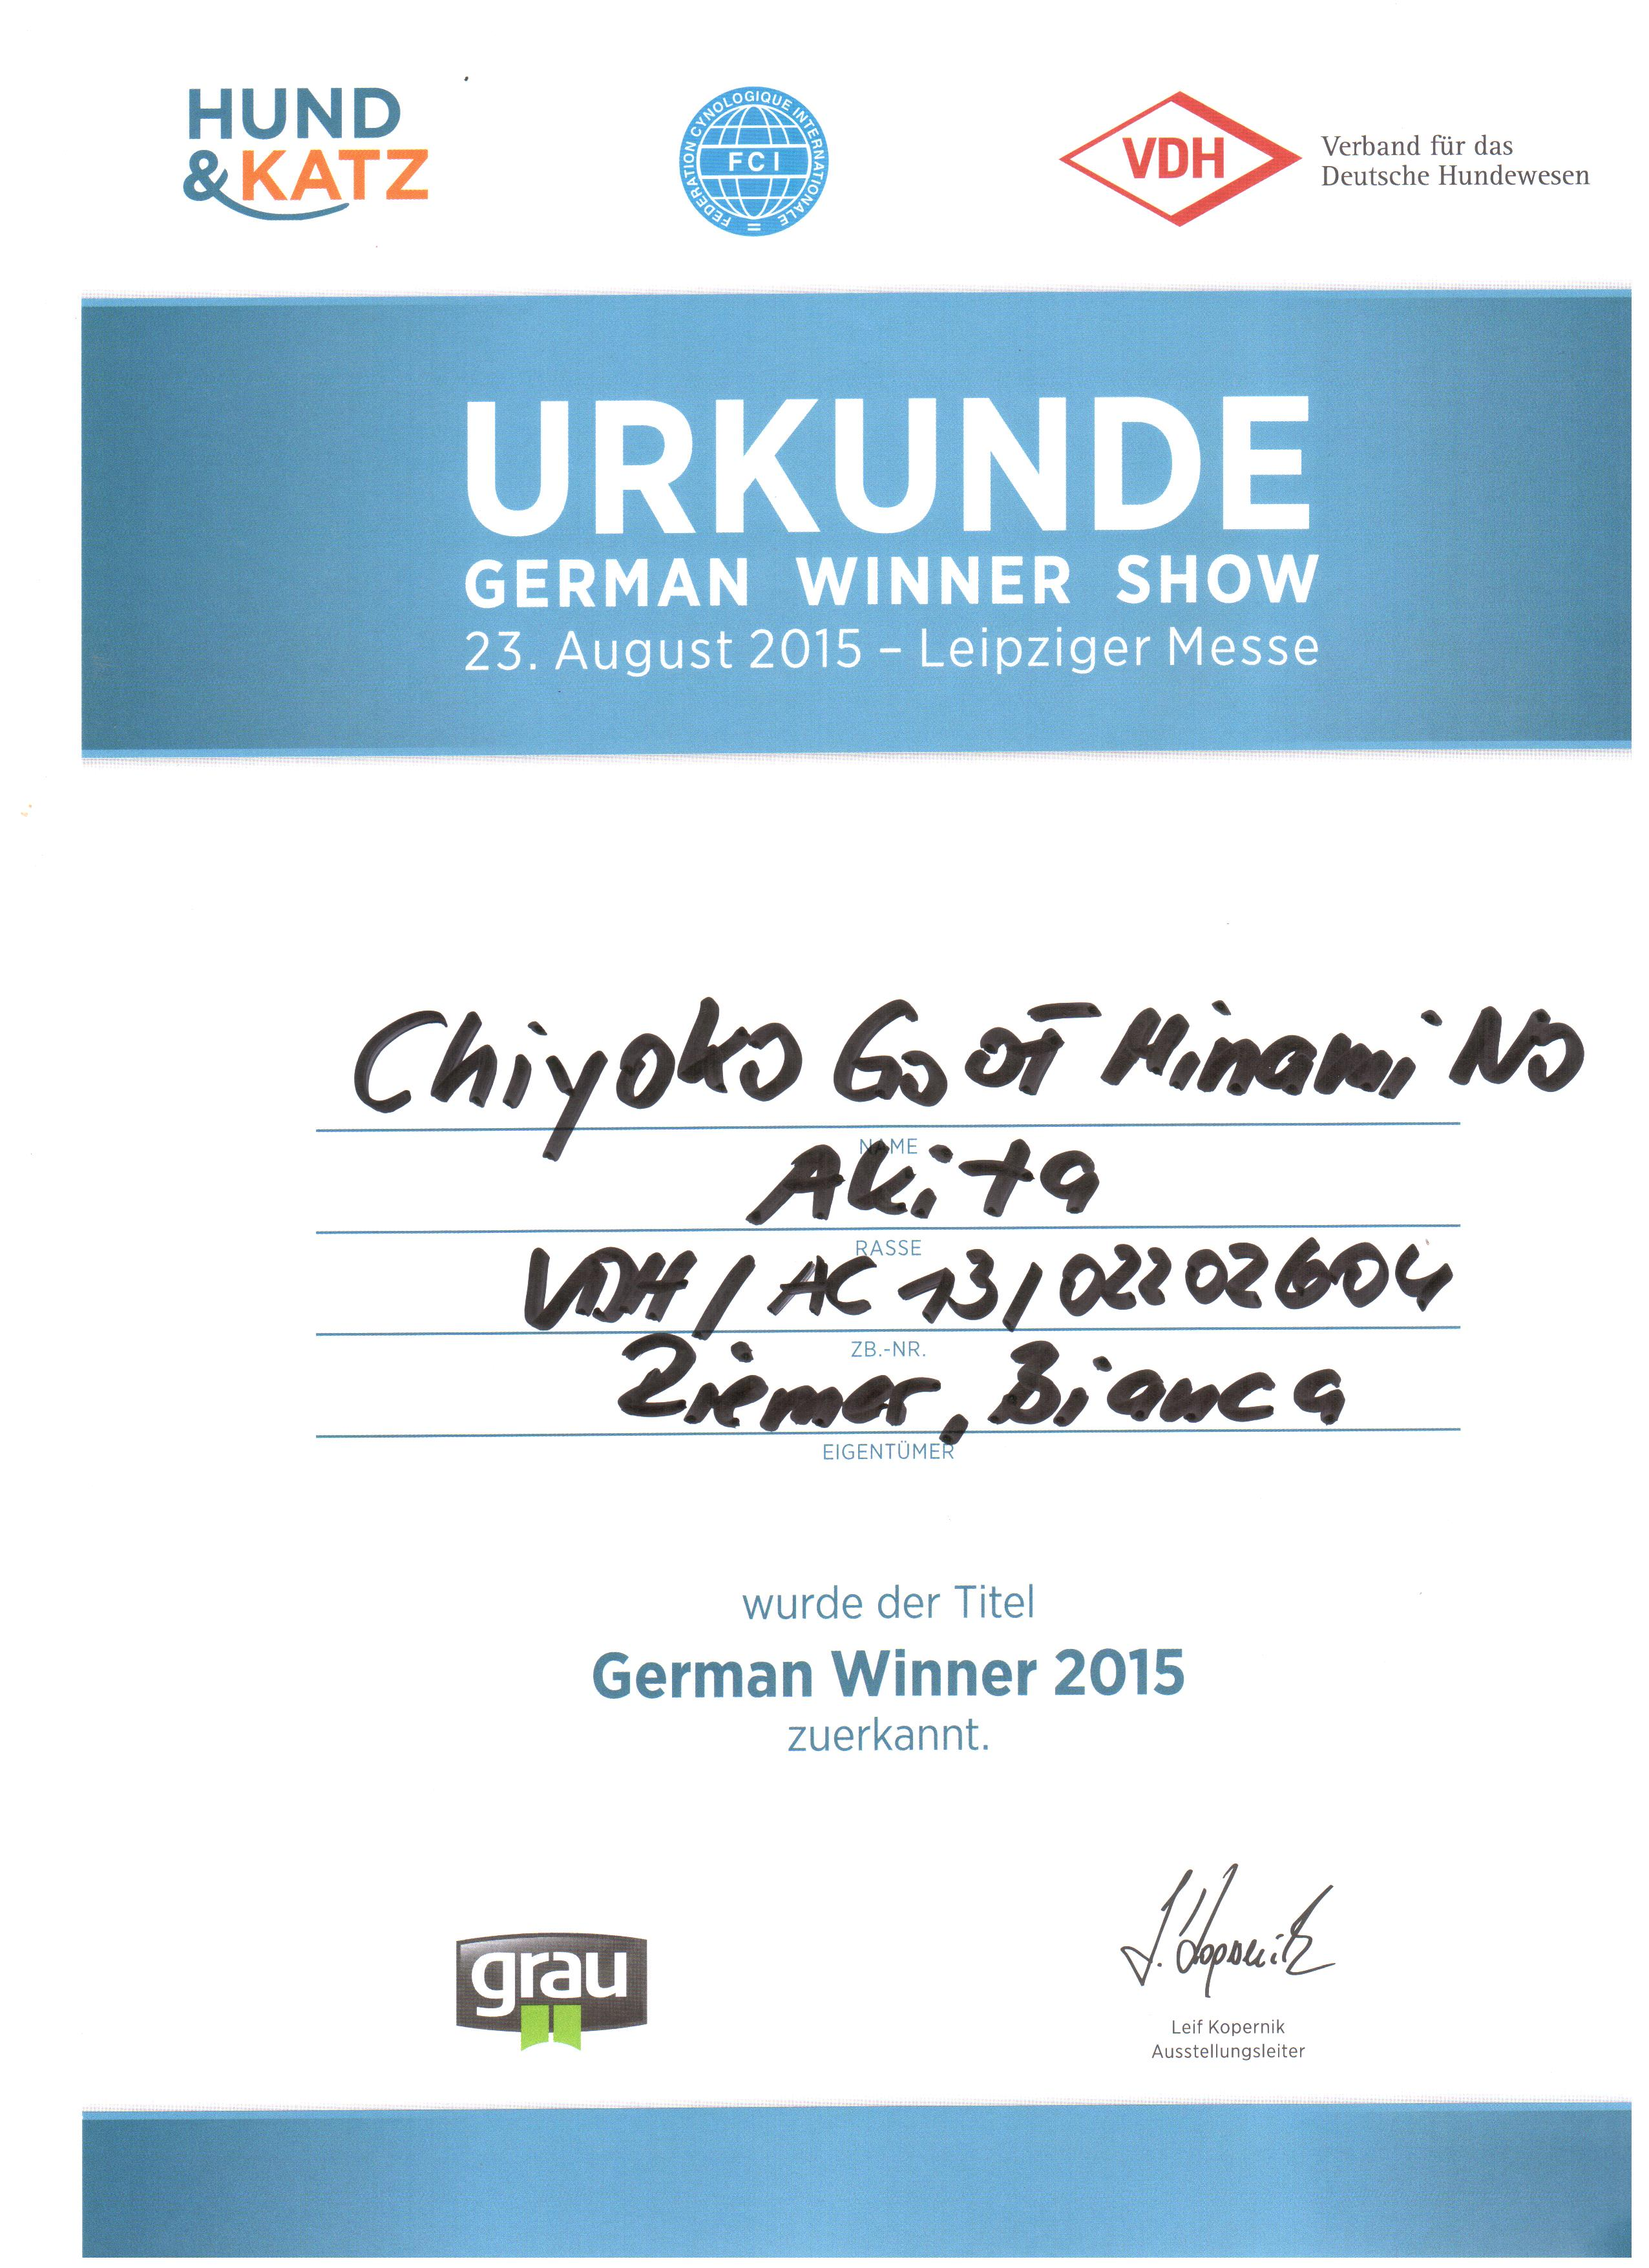 German Winner 2015